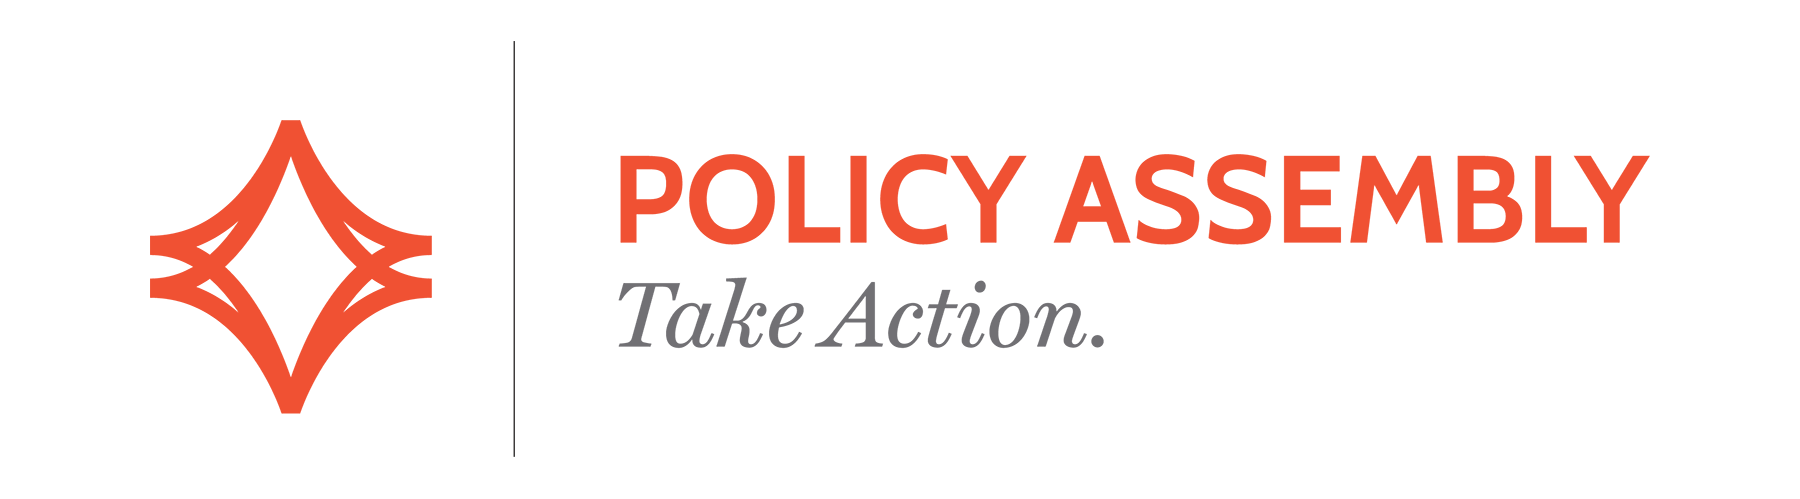 Policy Assembly